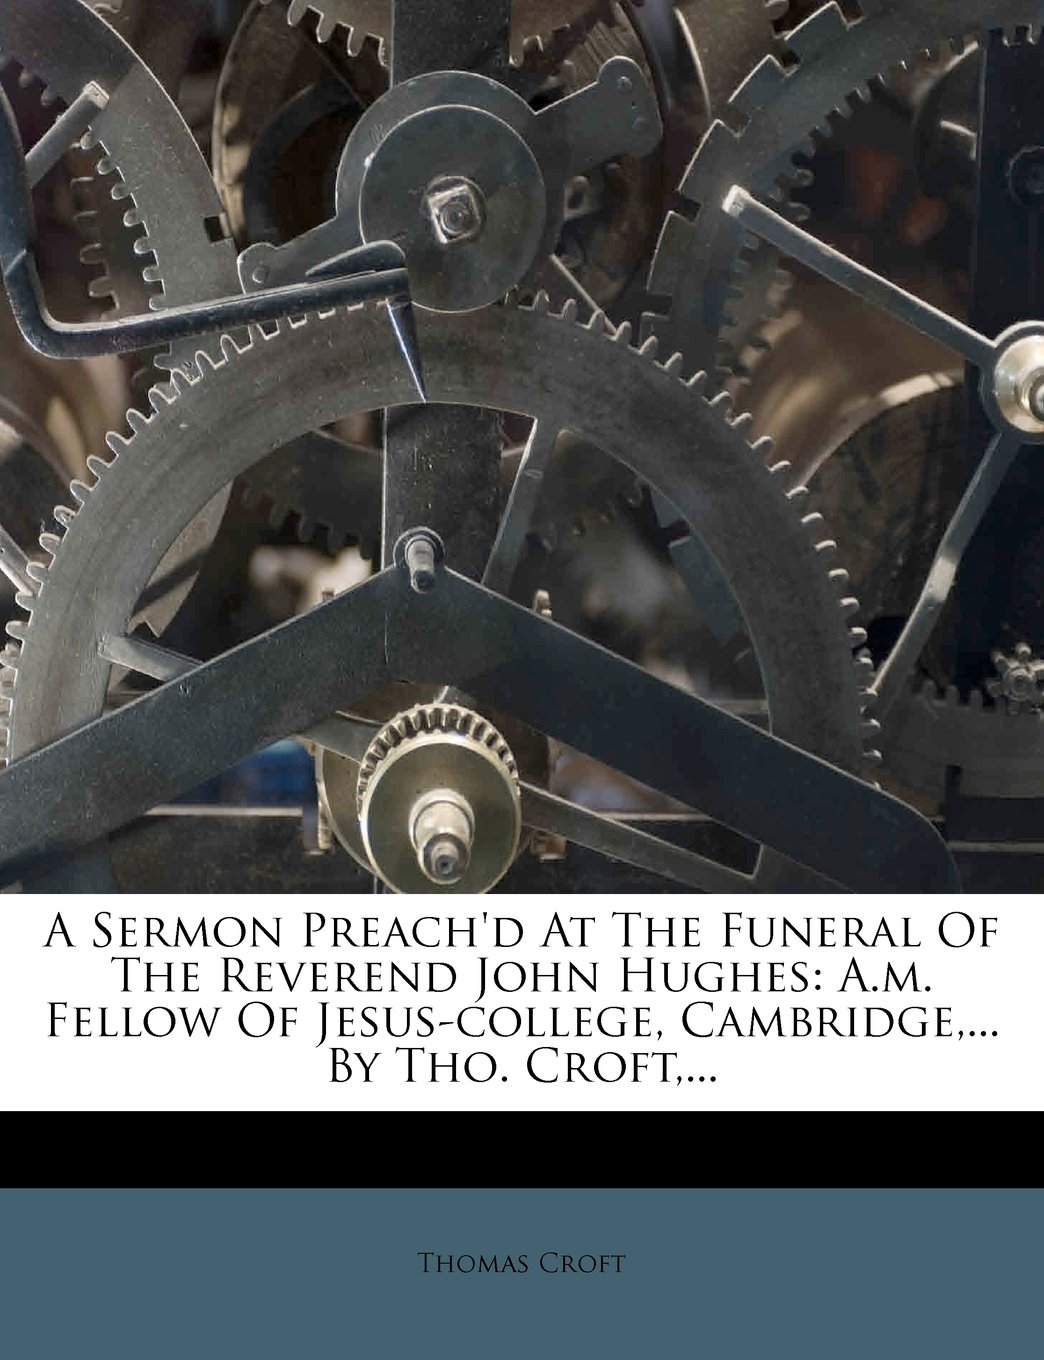 Read Online A Sermon Preach'd At The Funeral Of The Reverend John Hughes: A.m. Fellow Of Jesus-college, Cambridge,... By Tho. Croft,... ebook